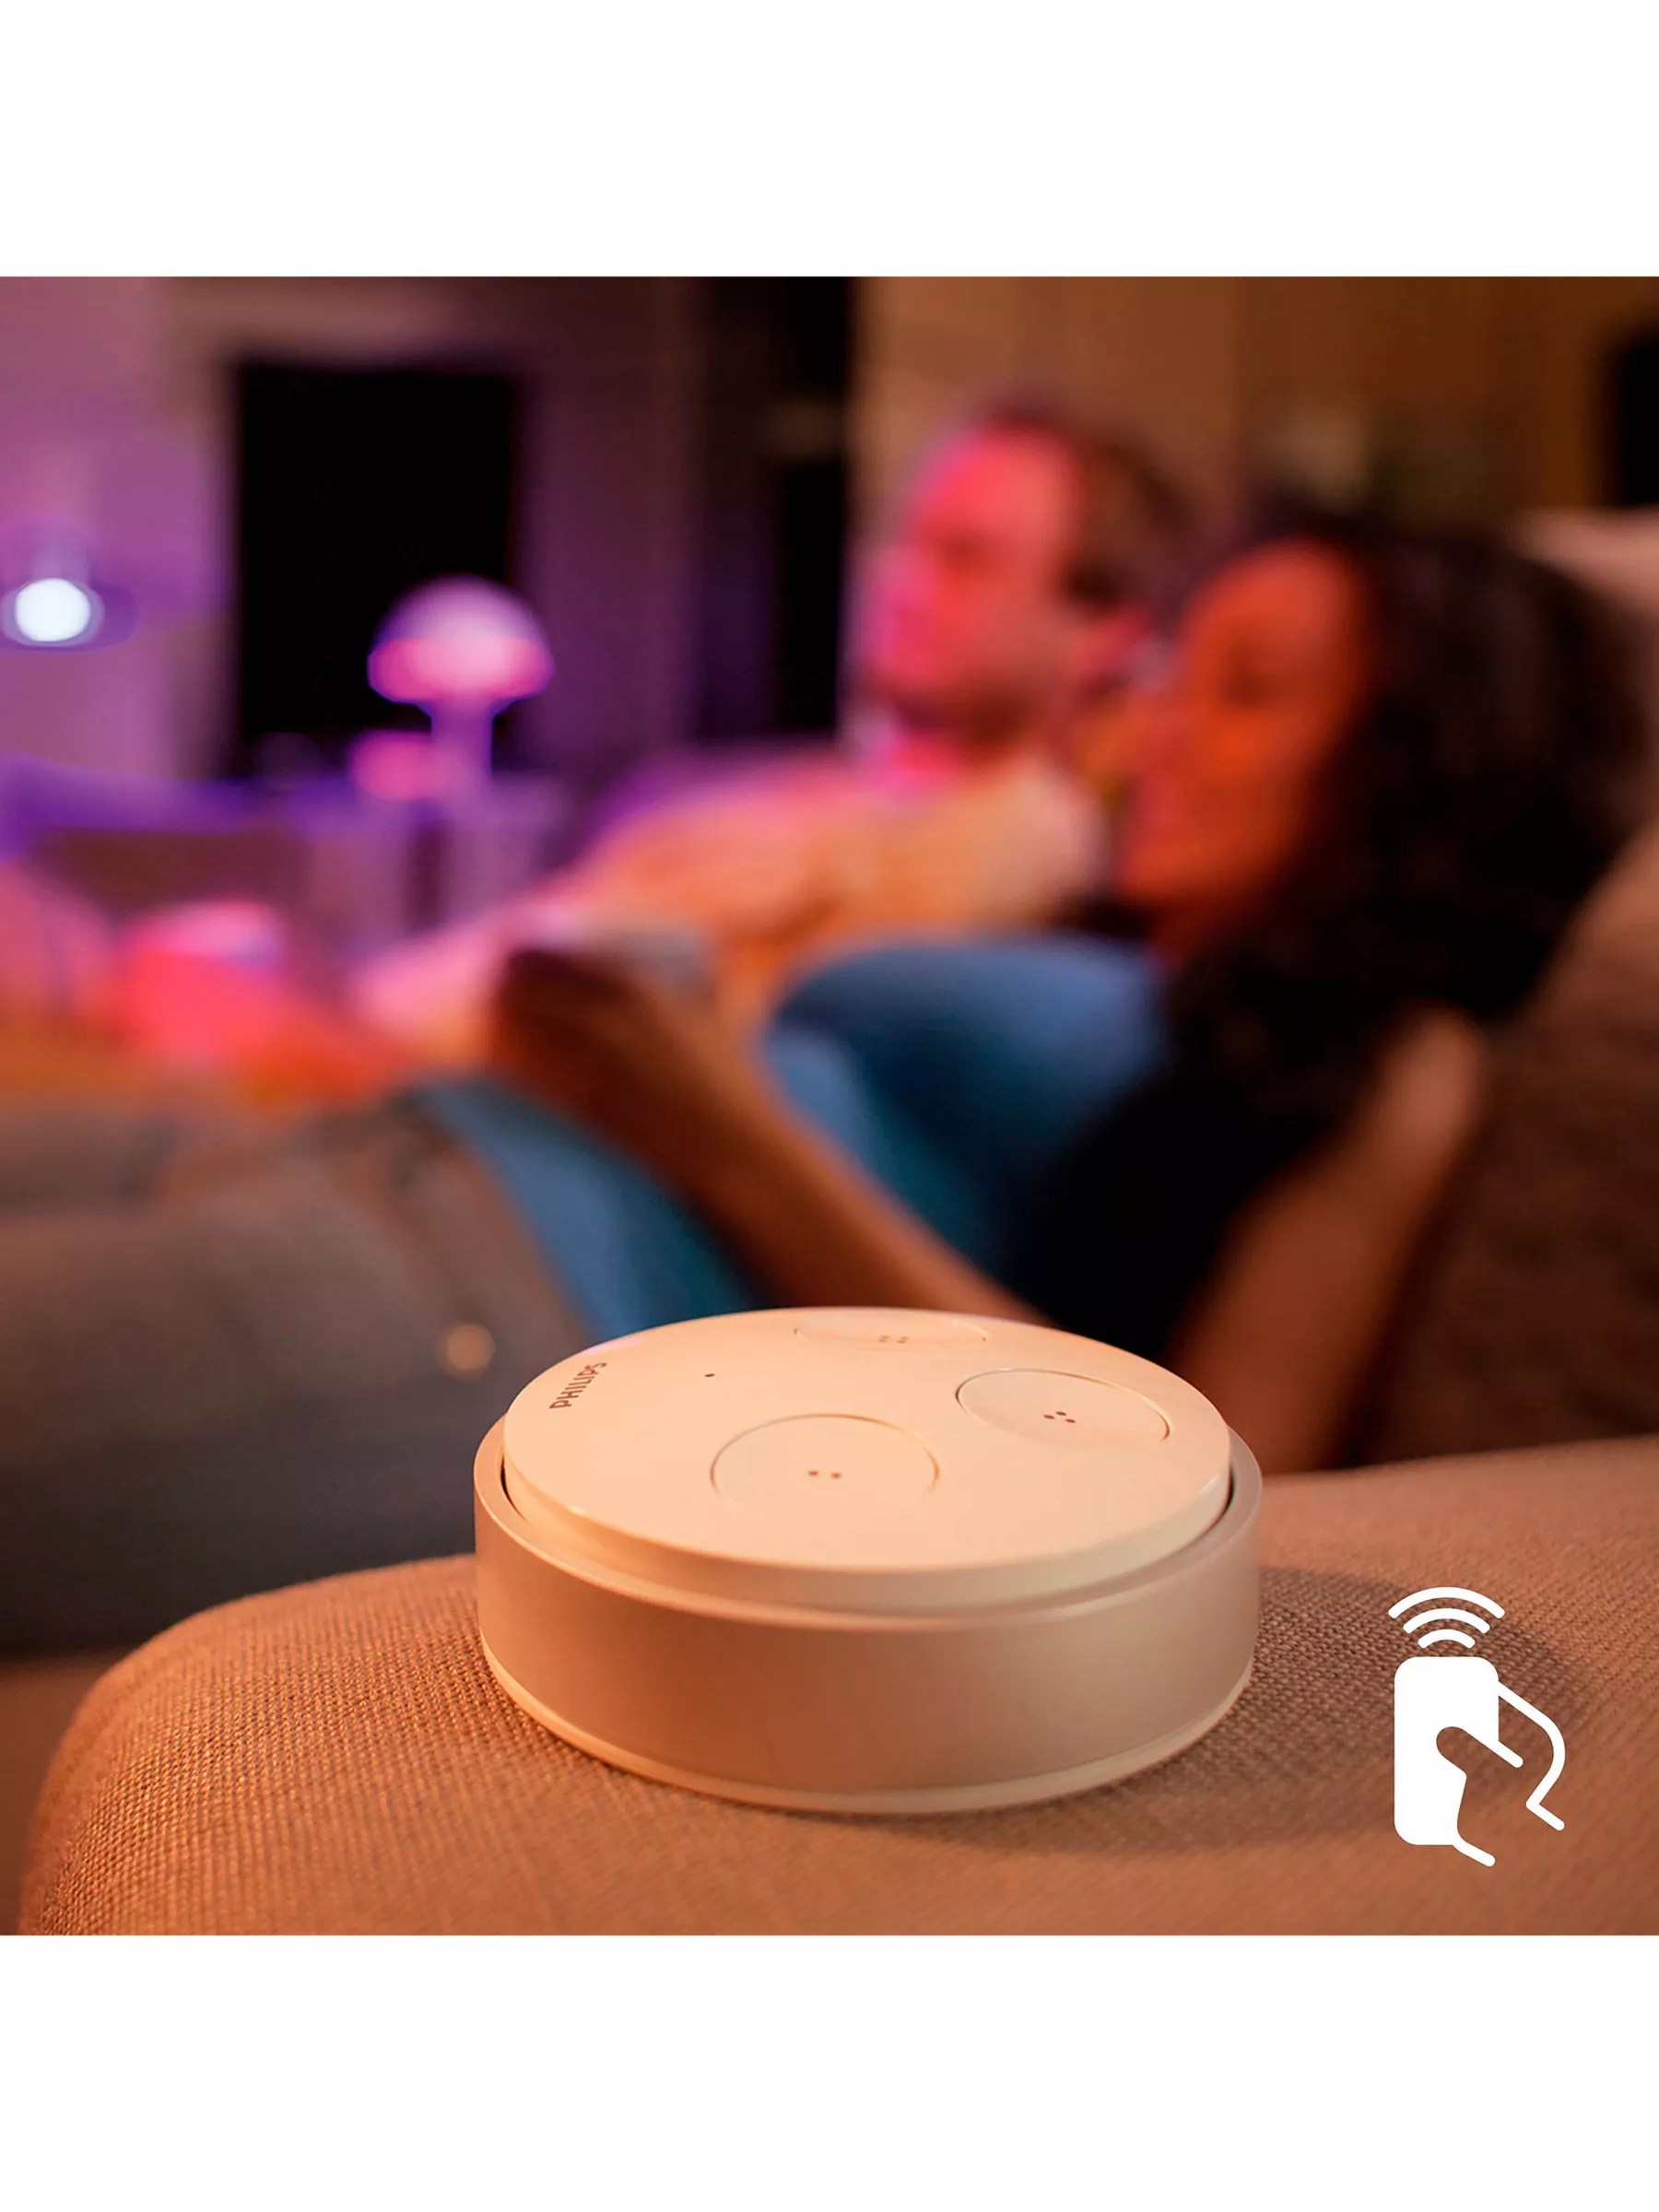 philips hue personal wireless lighting tap smart switch